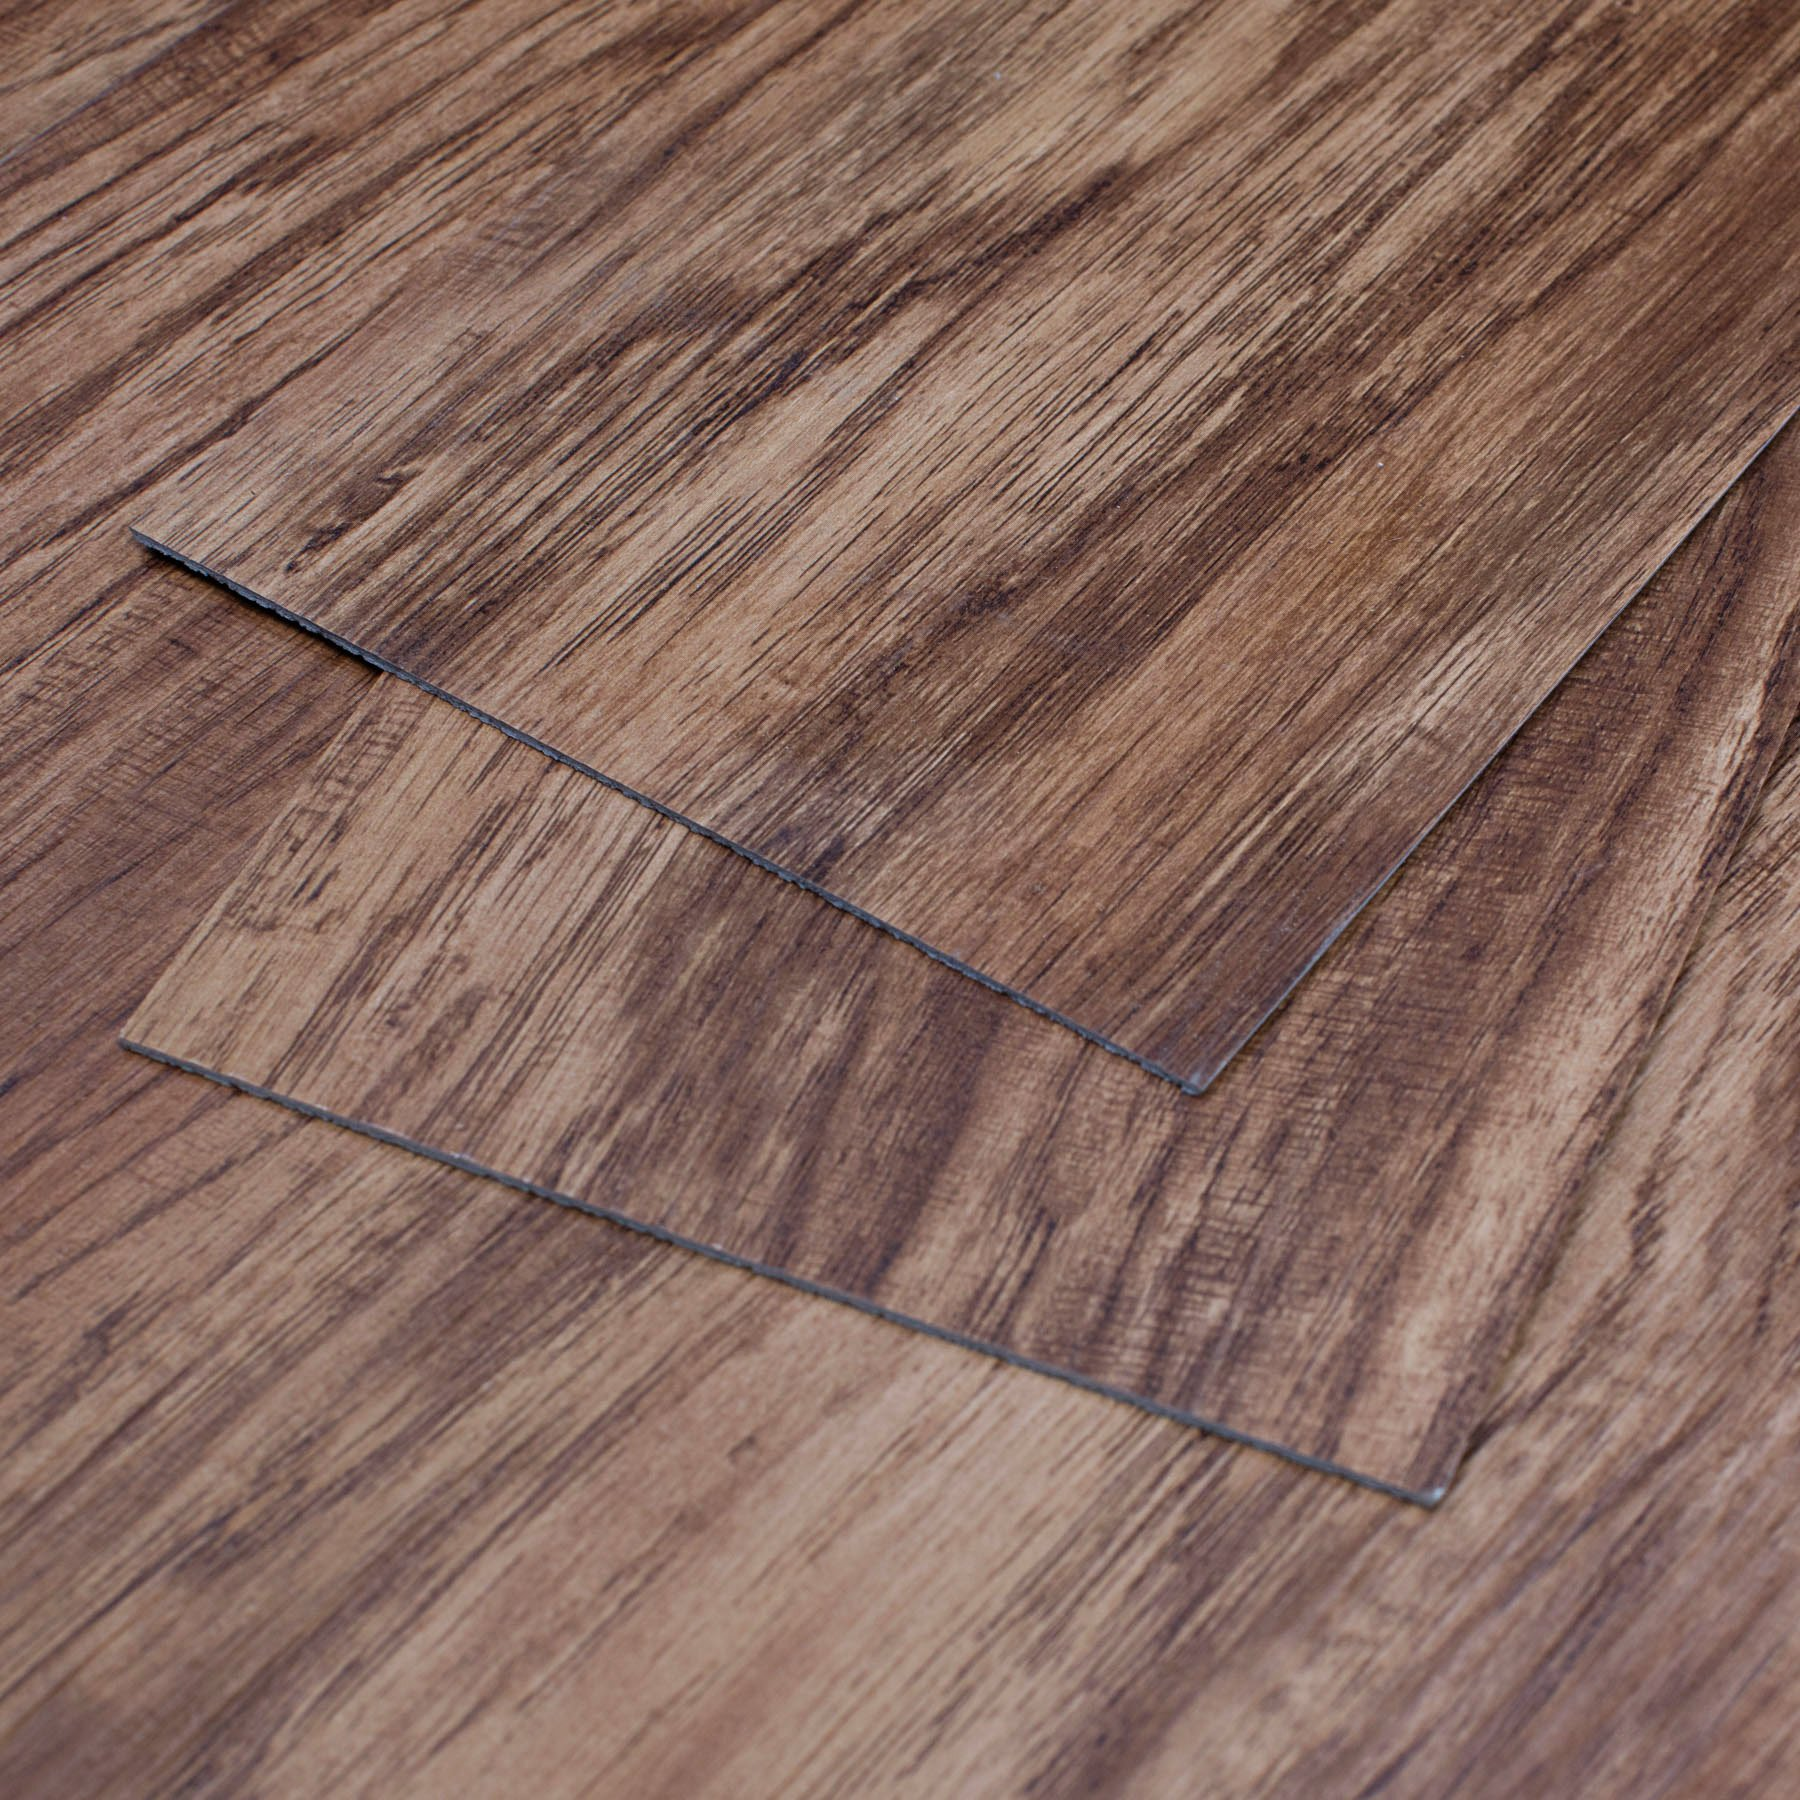 MAYKKE Heirloom Pine 47 Sq Ft Vinyl Plank Flooring 48x6 inch | Resembles Hardwood, Or Use for Wood Accent Wall | Pack of 24, Easy Install JHA1000102 by Maykke (Image #1)